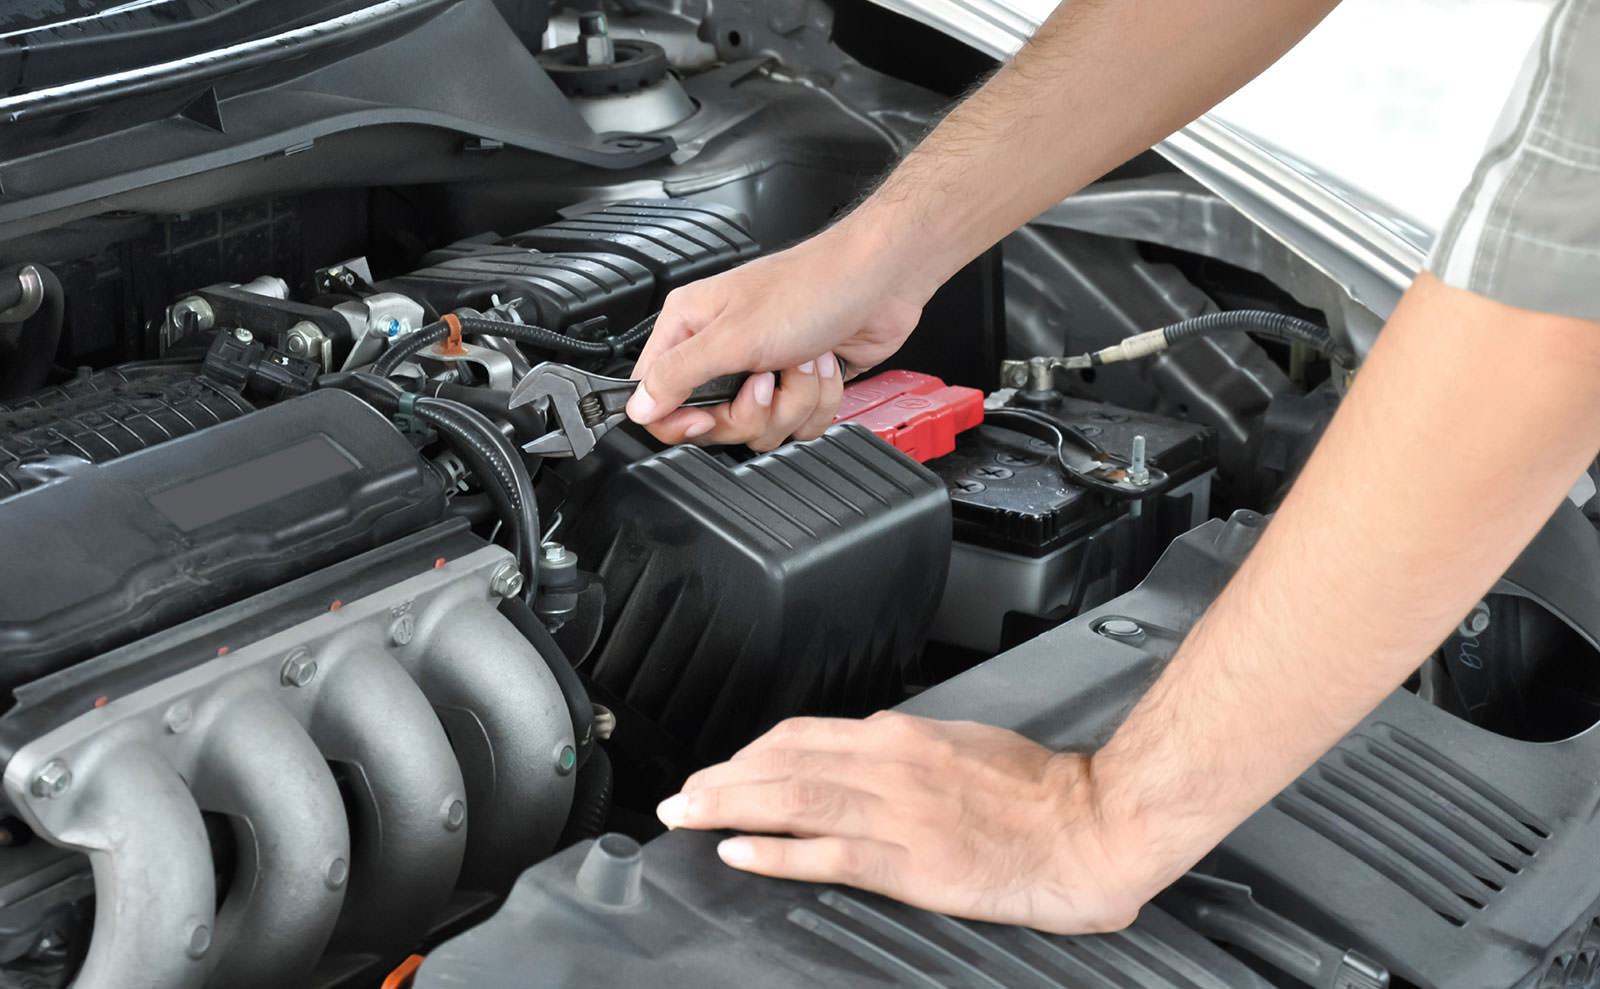 5 Simple Car Maintenance Jobs